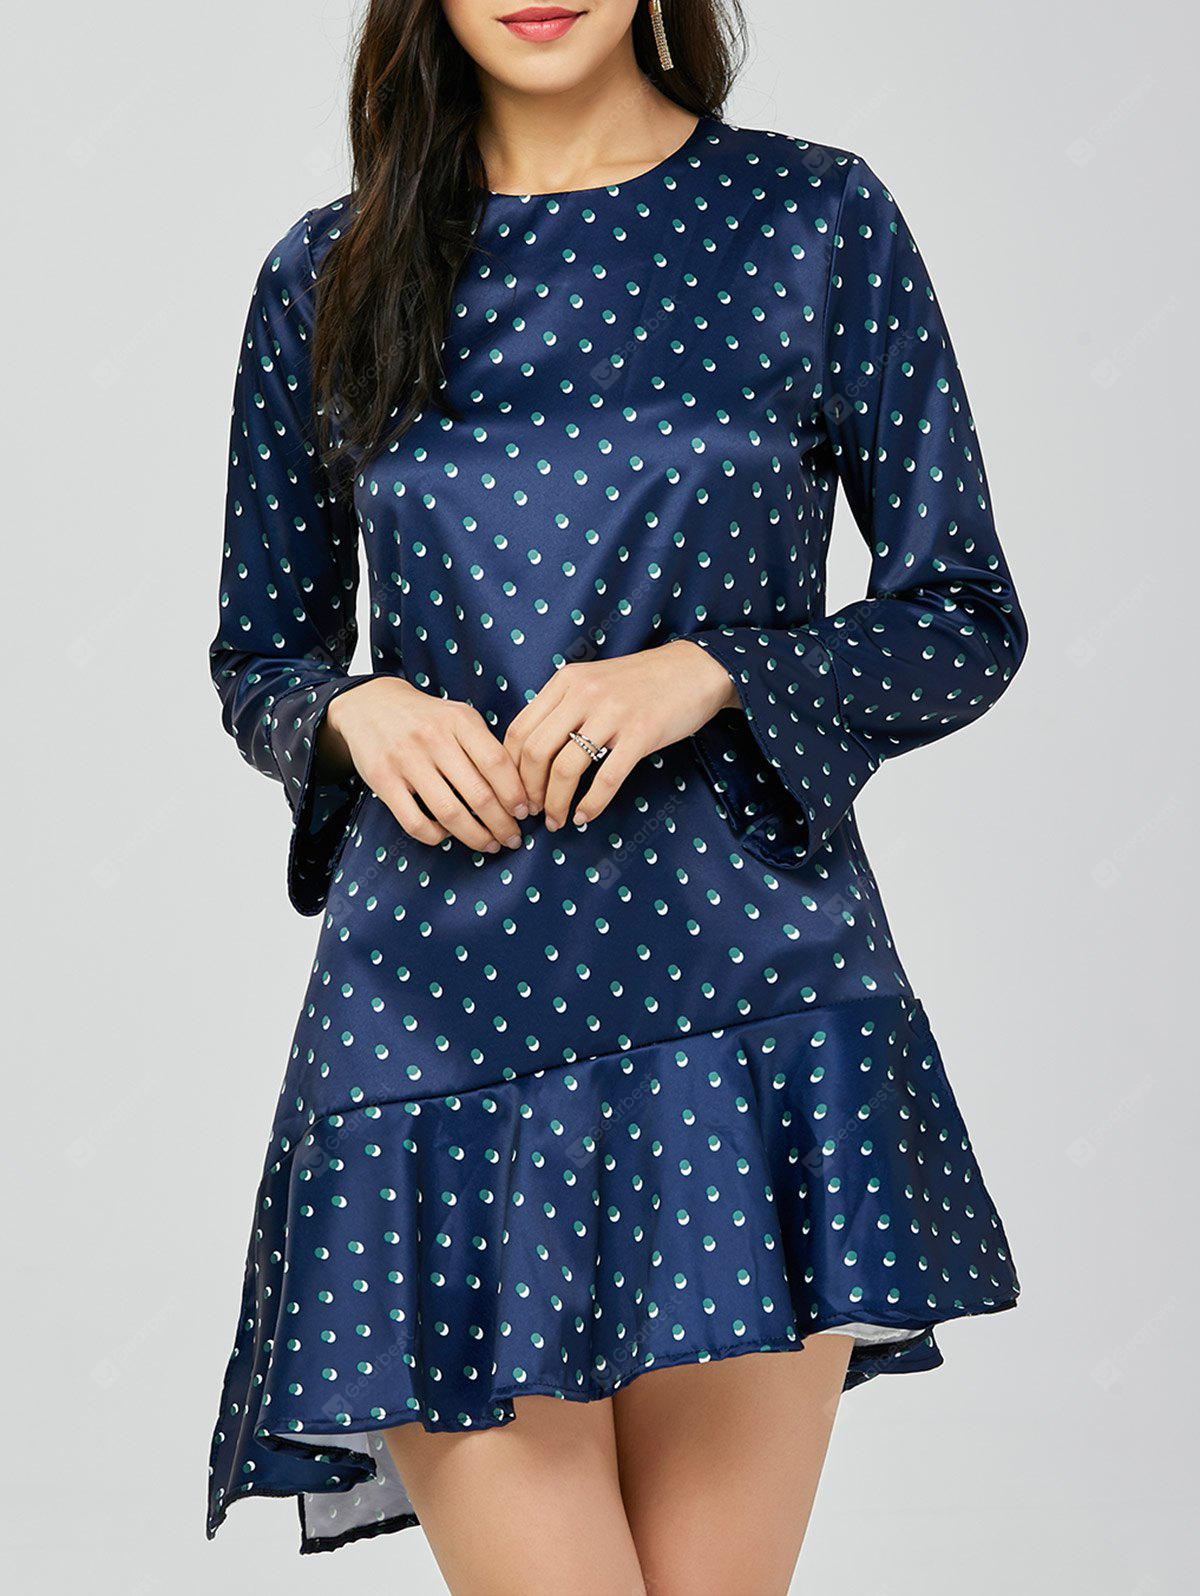 BLUE S Polka Dot Drop Waist Dress